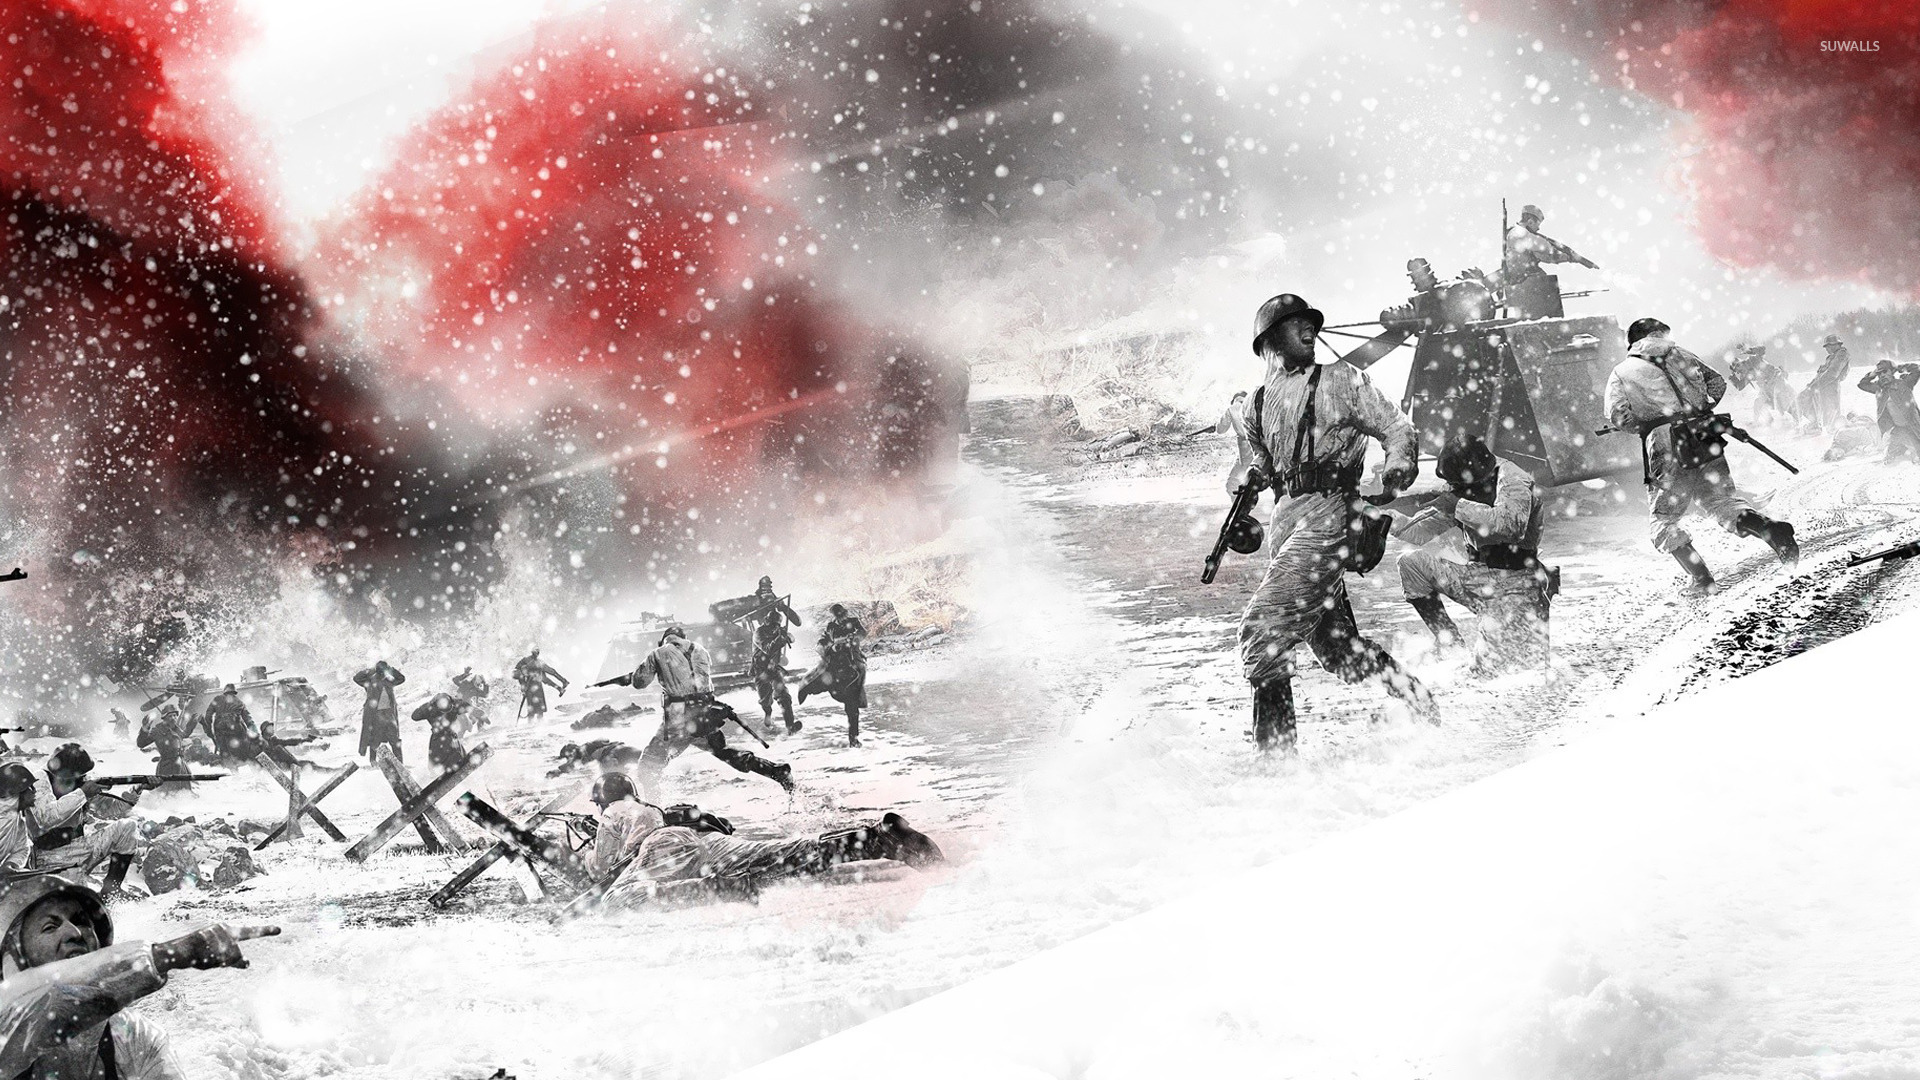 Company of heroes 2 3 wallpaper game wallpapers 21356 for The wallpaper company